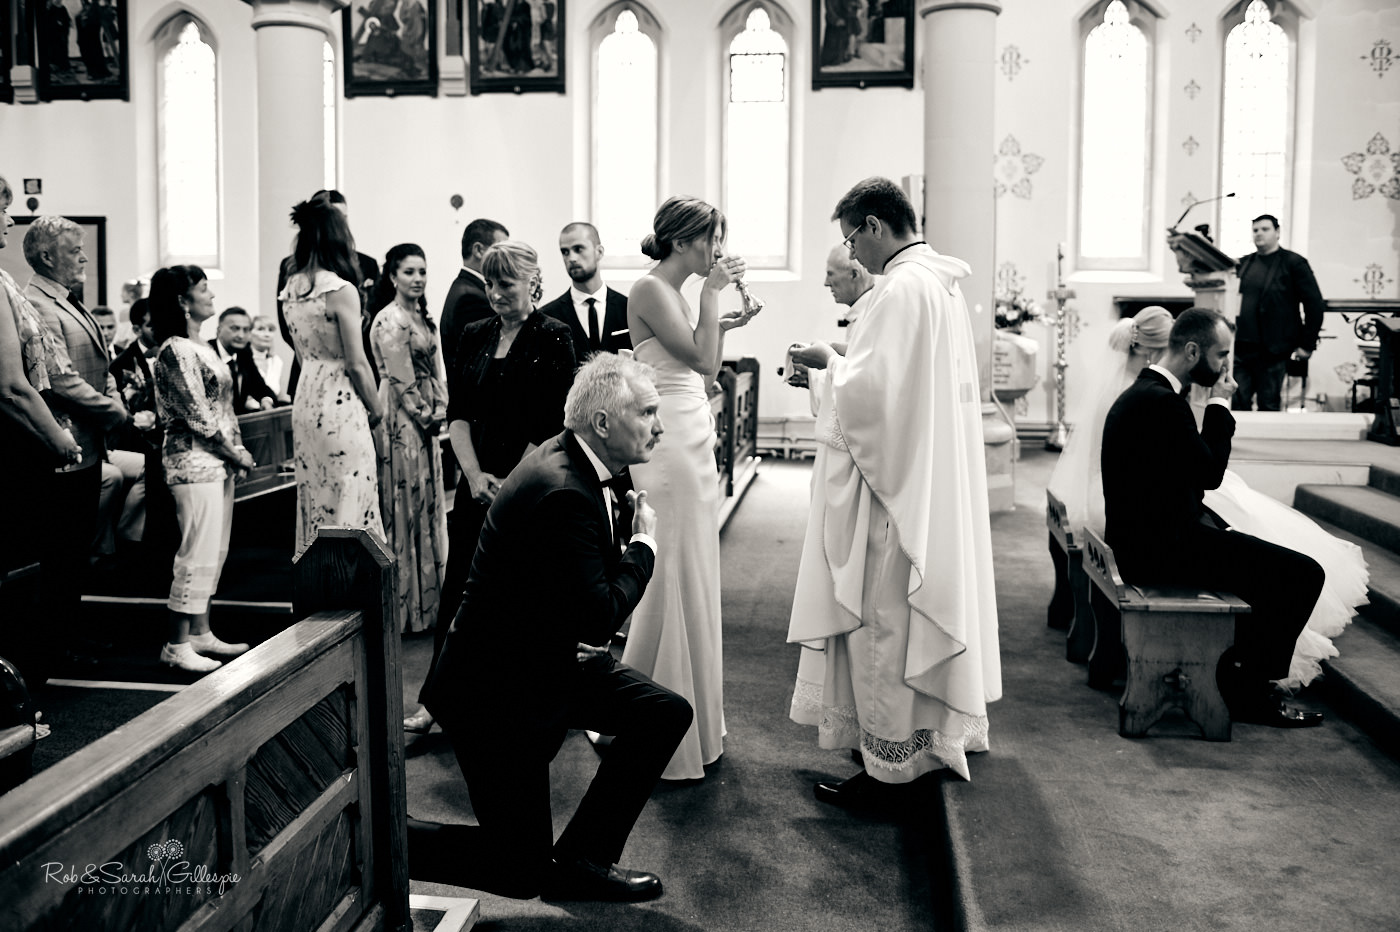 Bride and groom kiss in Catholic wedding at St Anne's church Birmingham